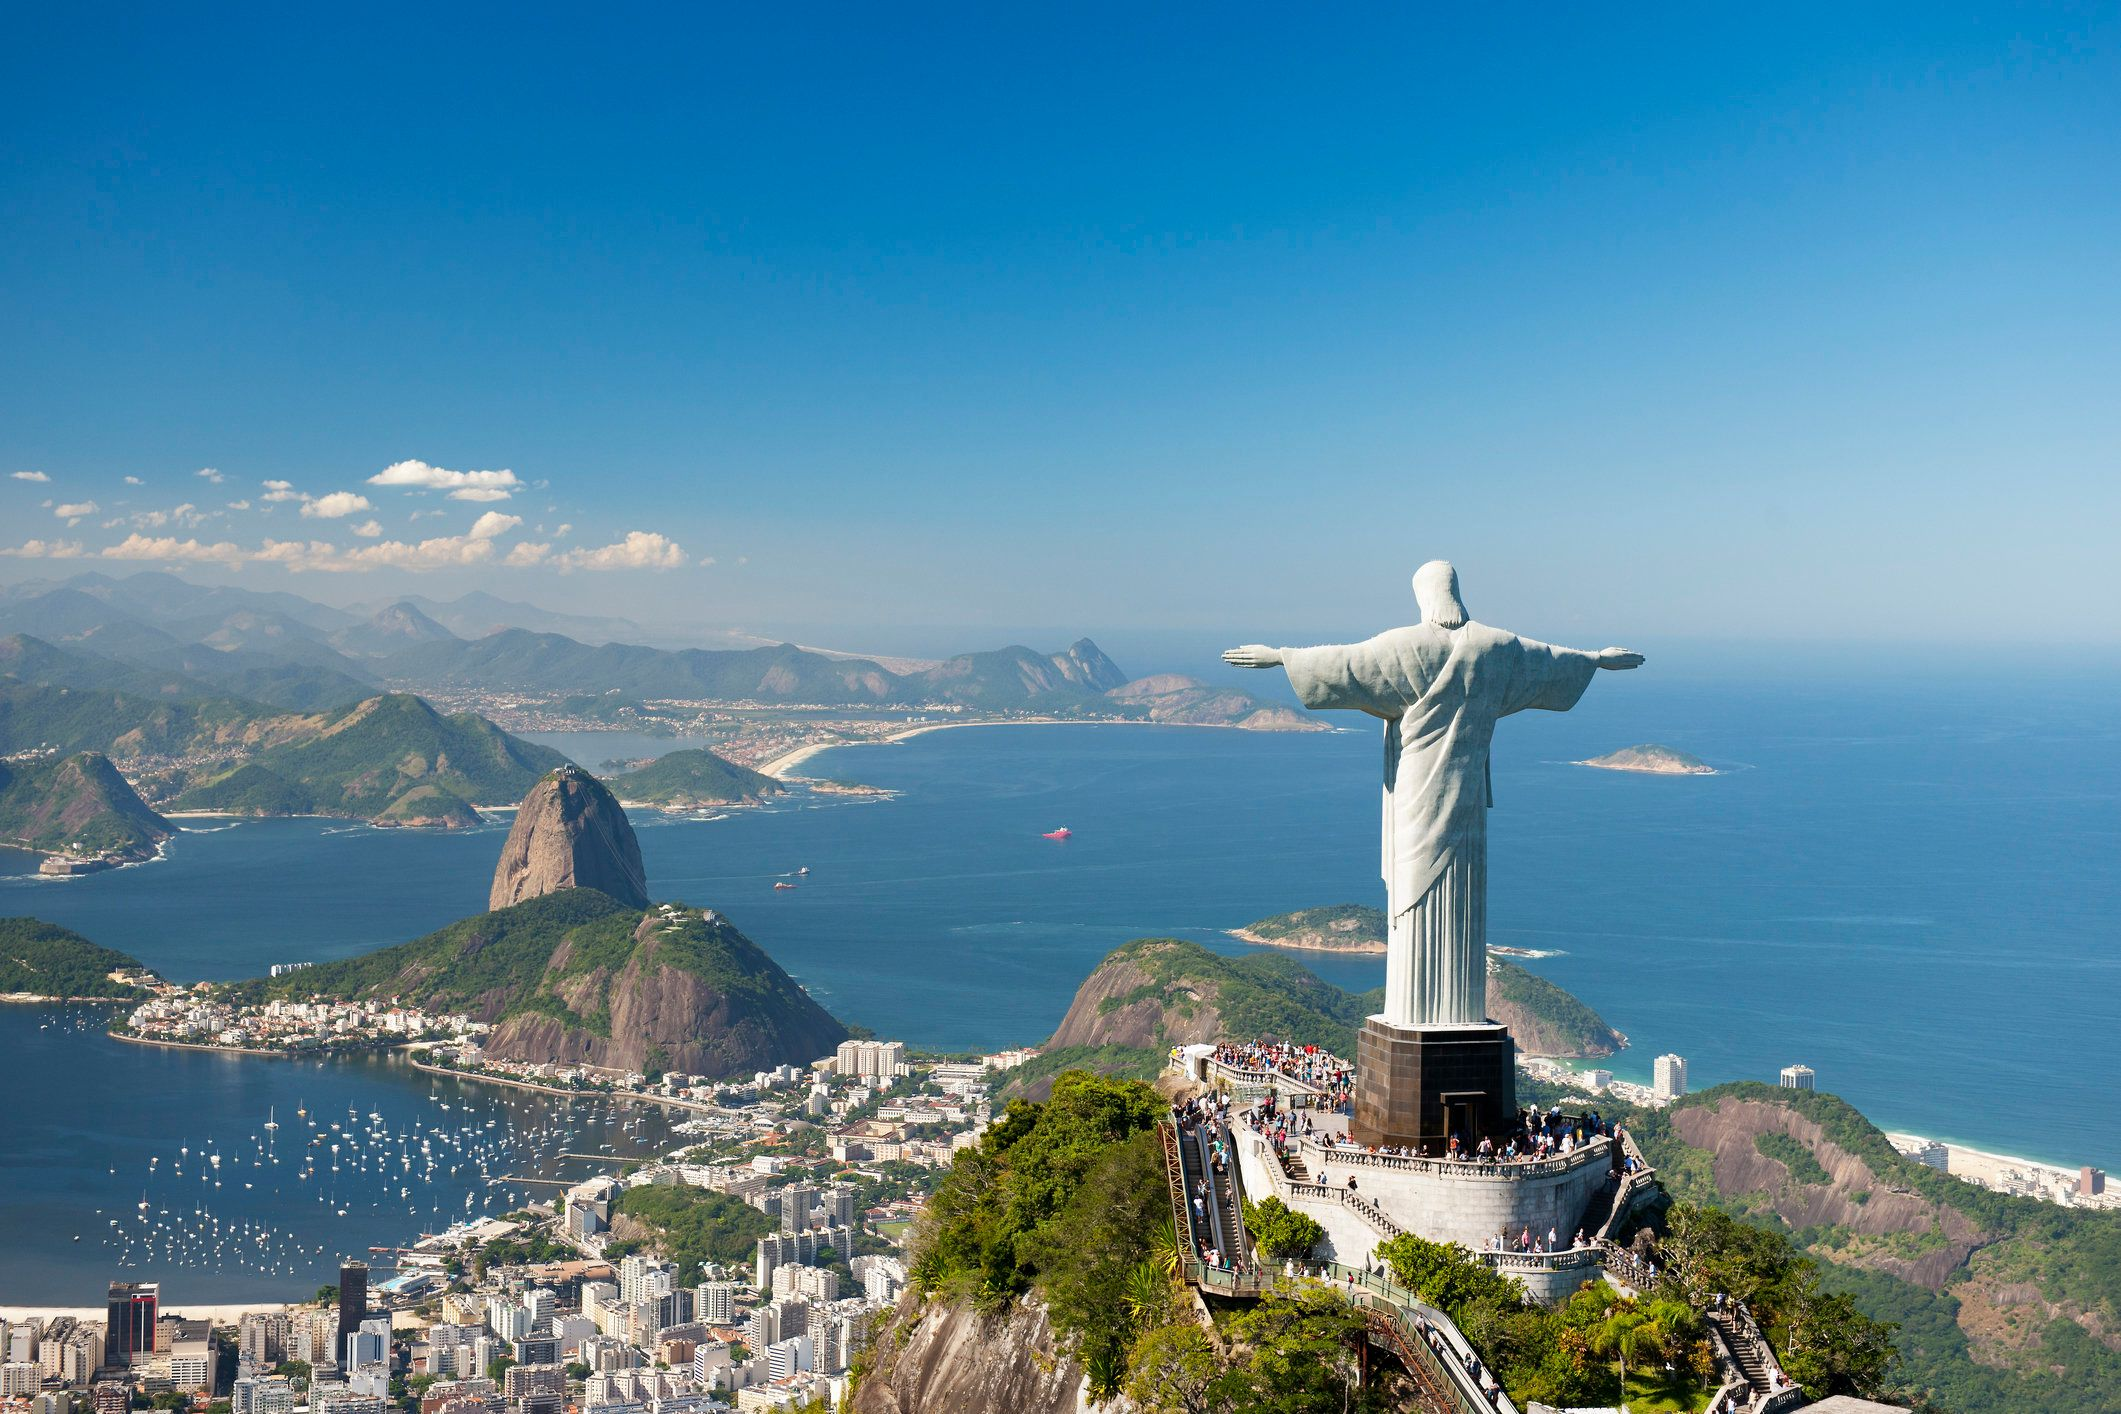 """More than <a href=""""http://www.bloomberg.com/news/articles/2016-06-21/rio-2016-organizers-remain-in-denial-even-as-tourism-fla"""